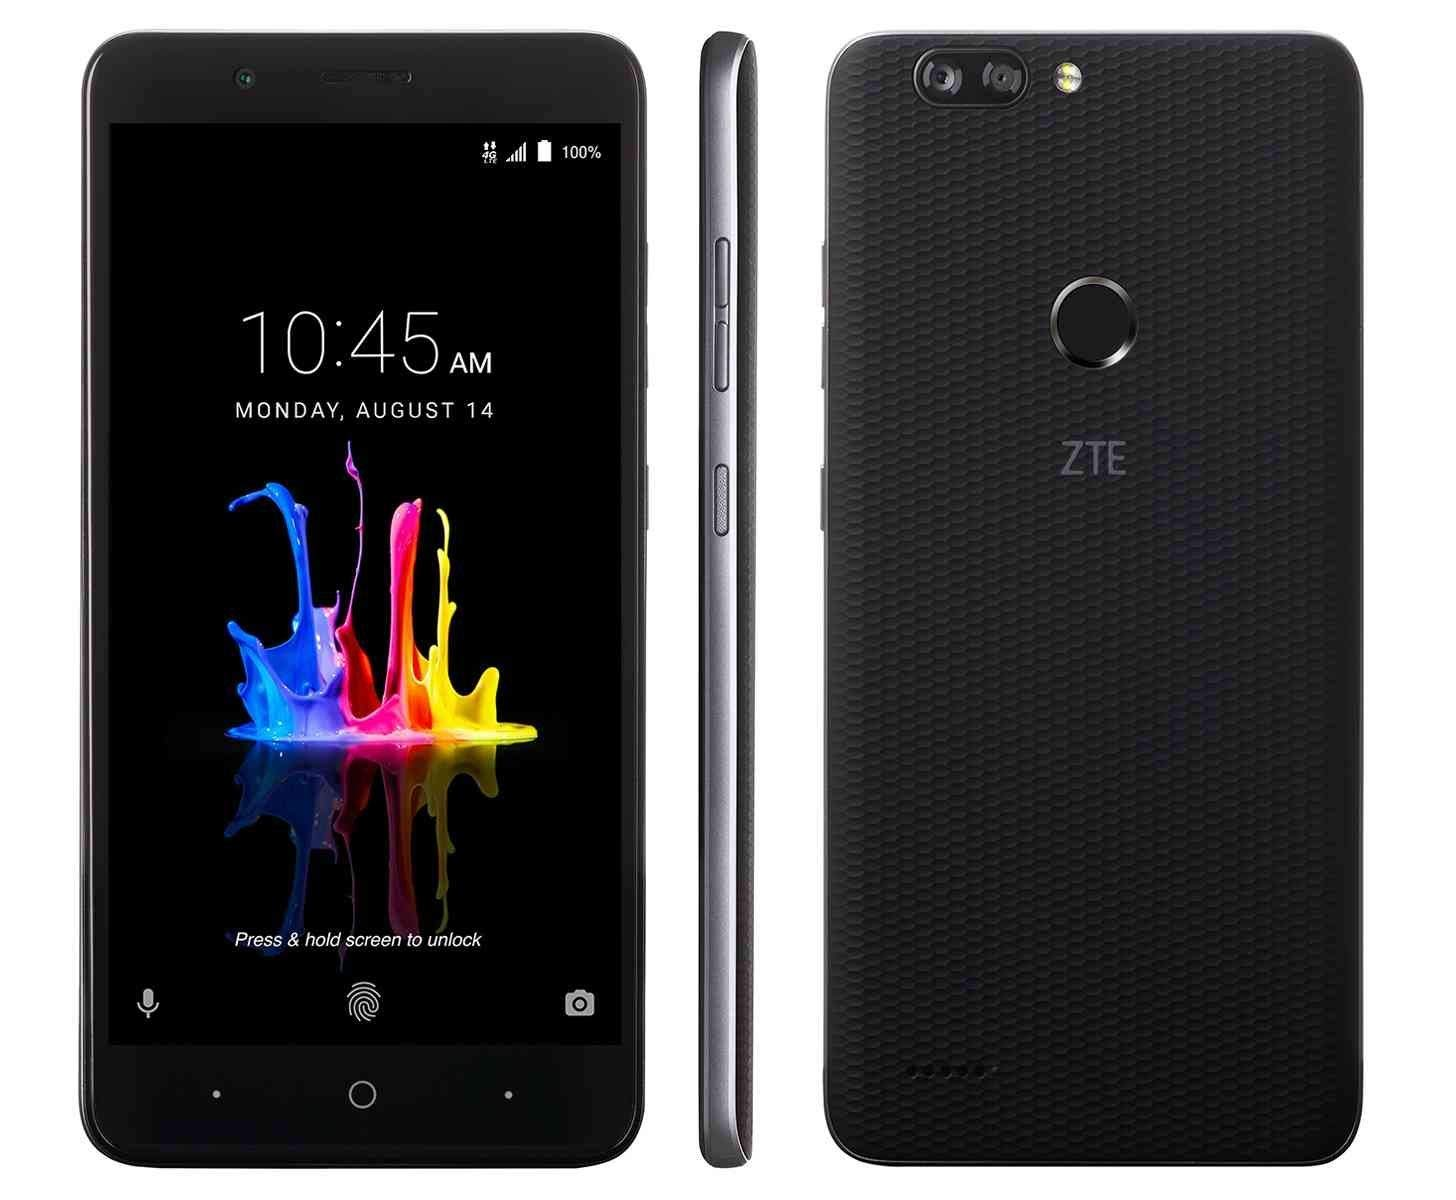 ZTE BLADE Z MAX Z982 (32GB, 2GB RAM) 6.0'' Full HD Display, Dual Rear Camera, 4080 mAh Battery, 4G LTE GSM Unlocked Smartphone w/ US Warranty (Black)